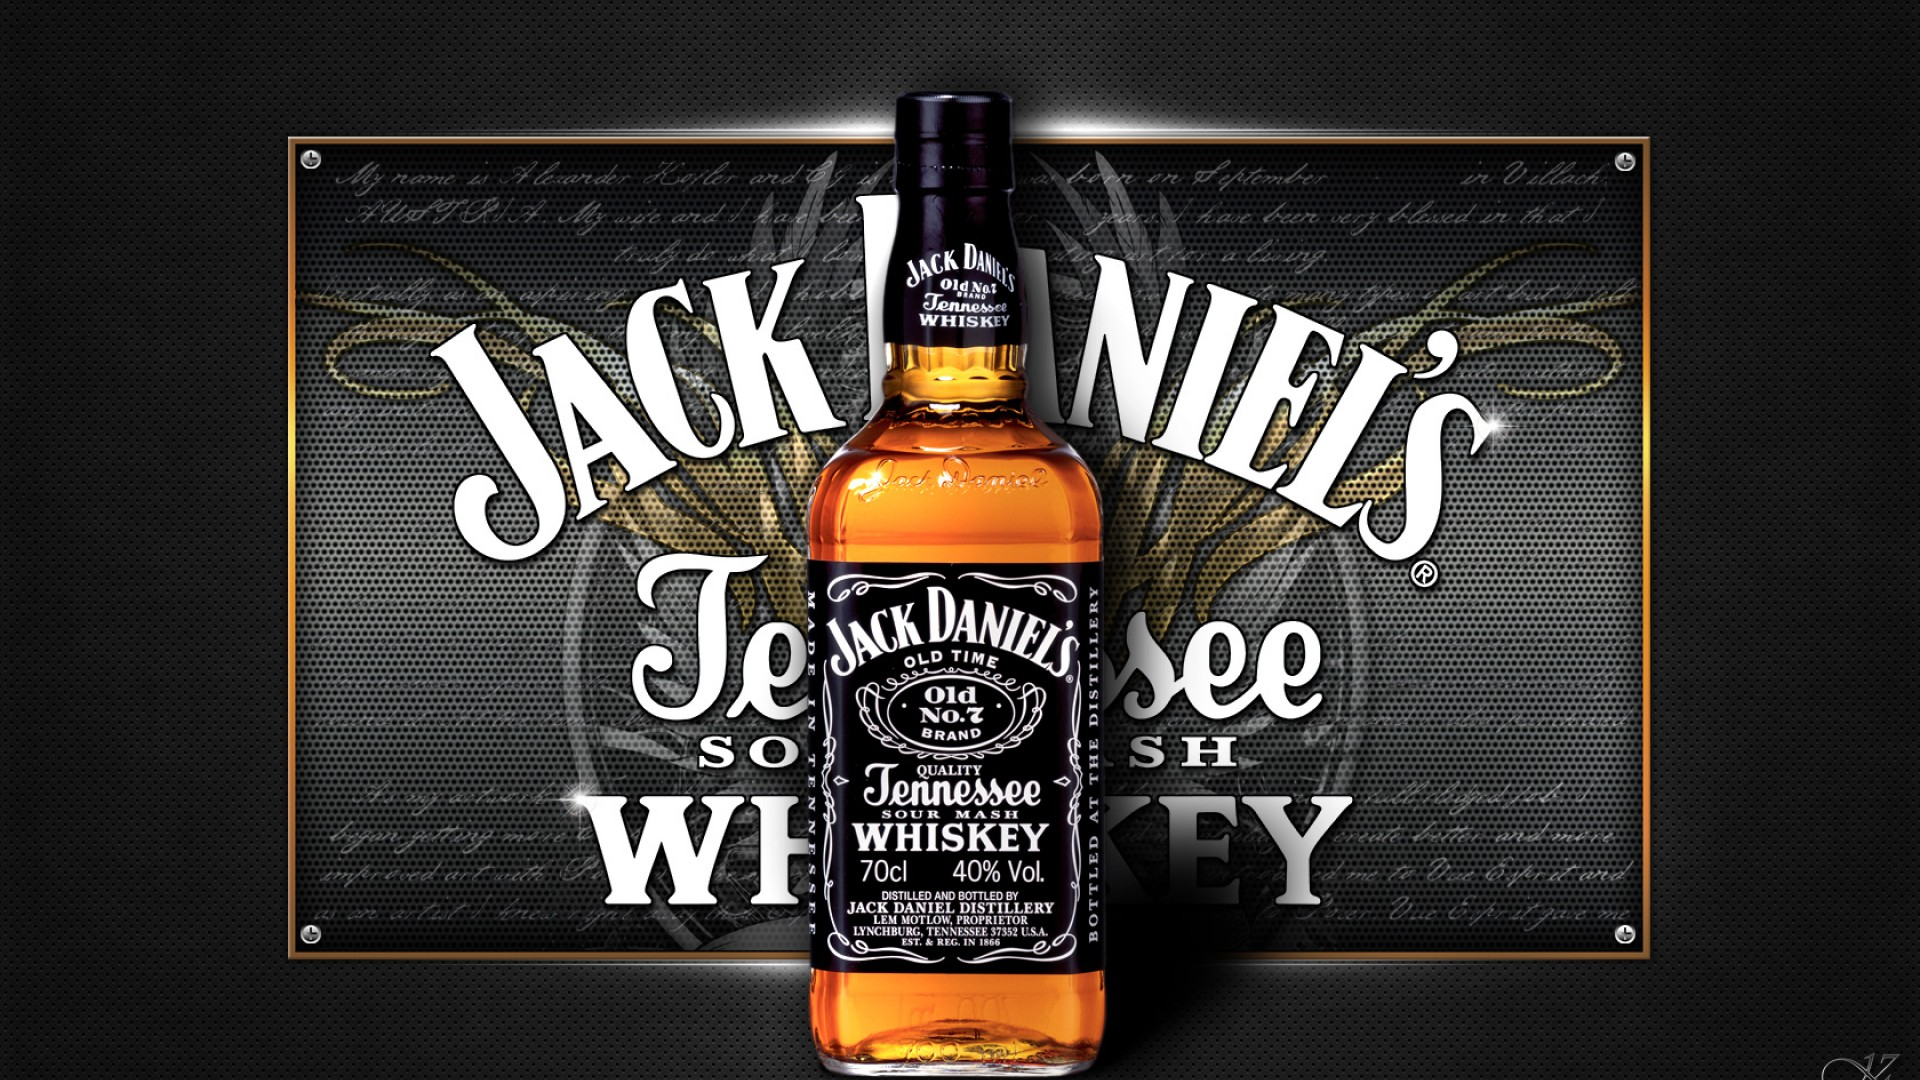 Jack Daniels Wallpaper   HD Wallpapers Backgrounds of Your 1920x1080